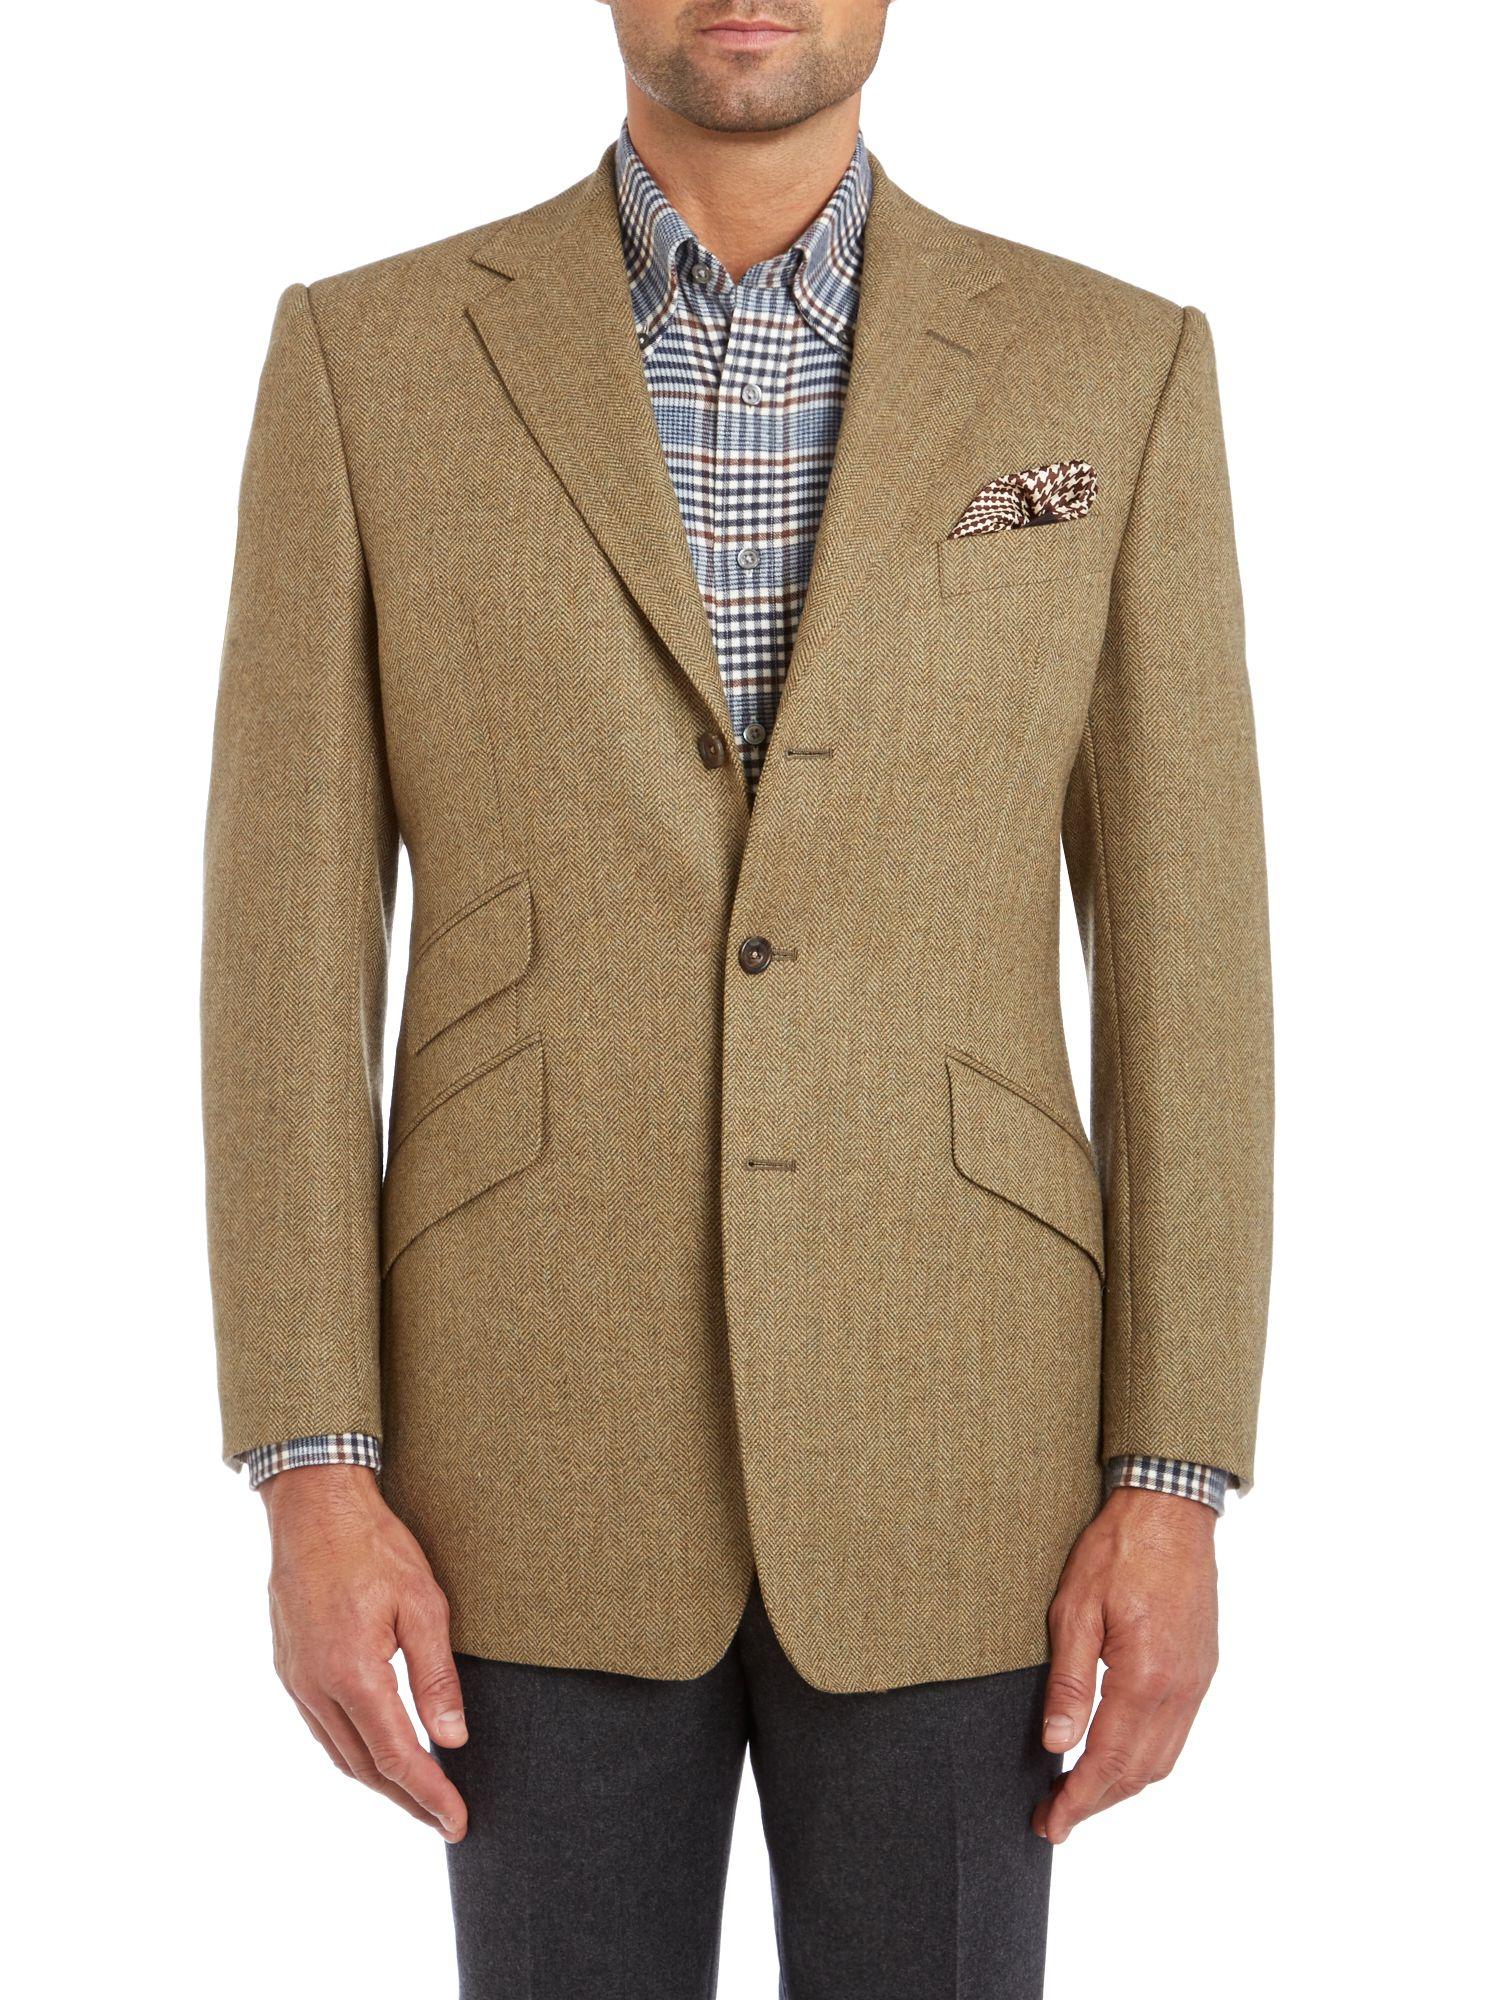 Lyst - Chester Barrie Grosvenor Herringbone Tweed Jacket in Green for Men